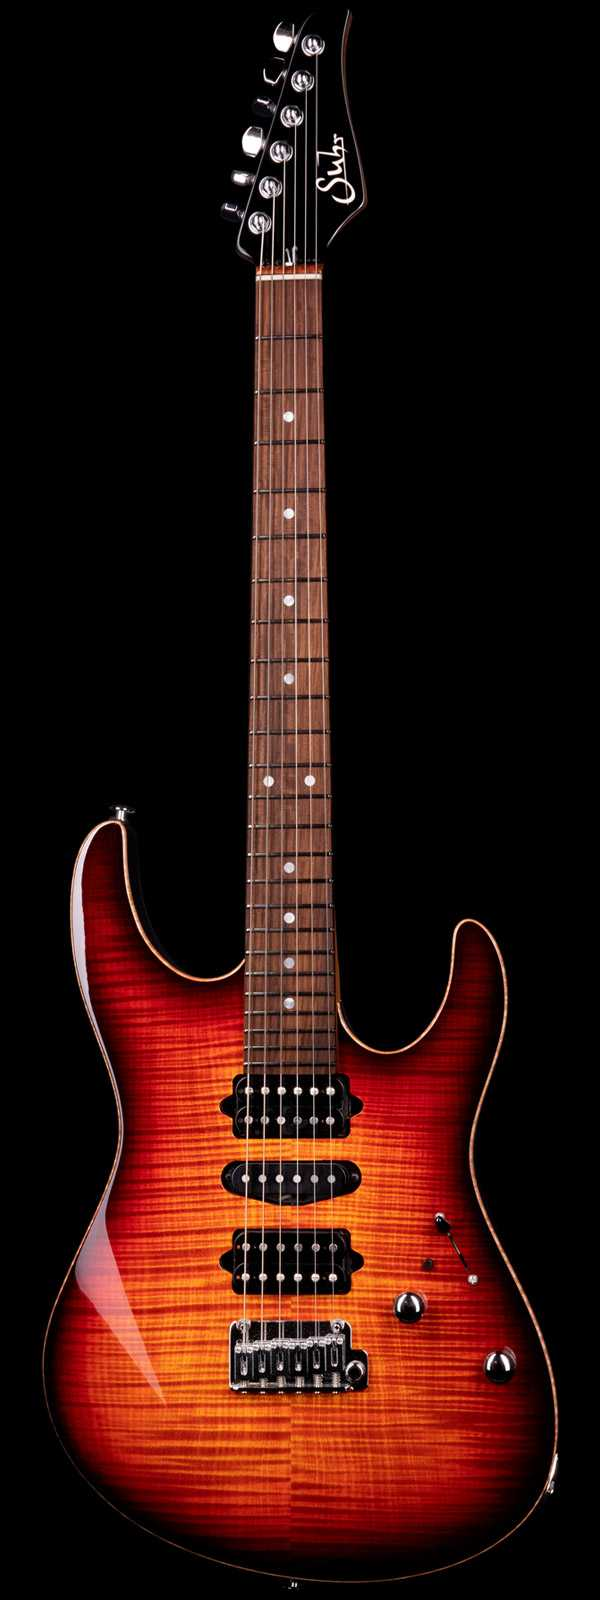 Suhr Custom Modern Flame Maple Top Roasted Maple Neck Inferno Burst